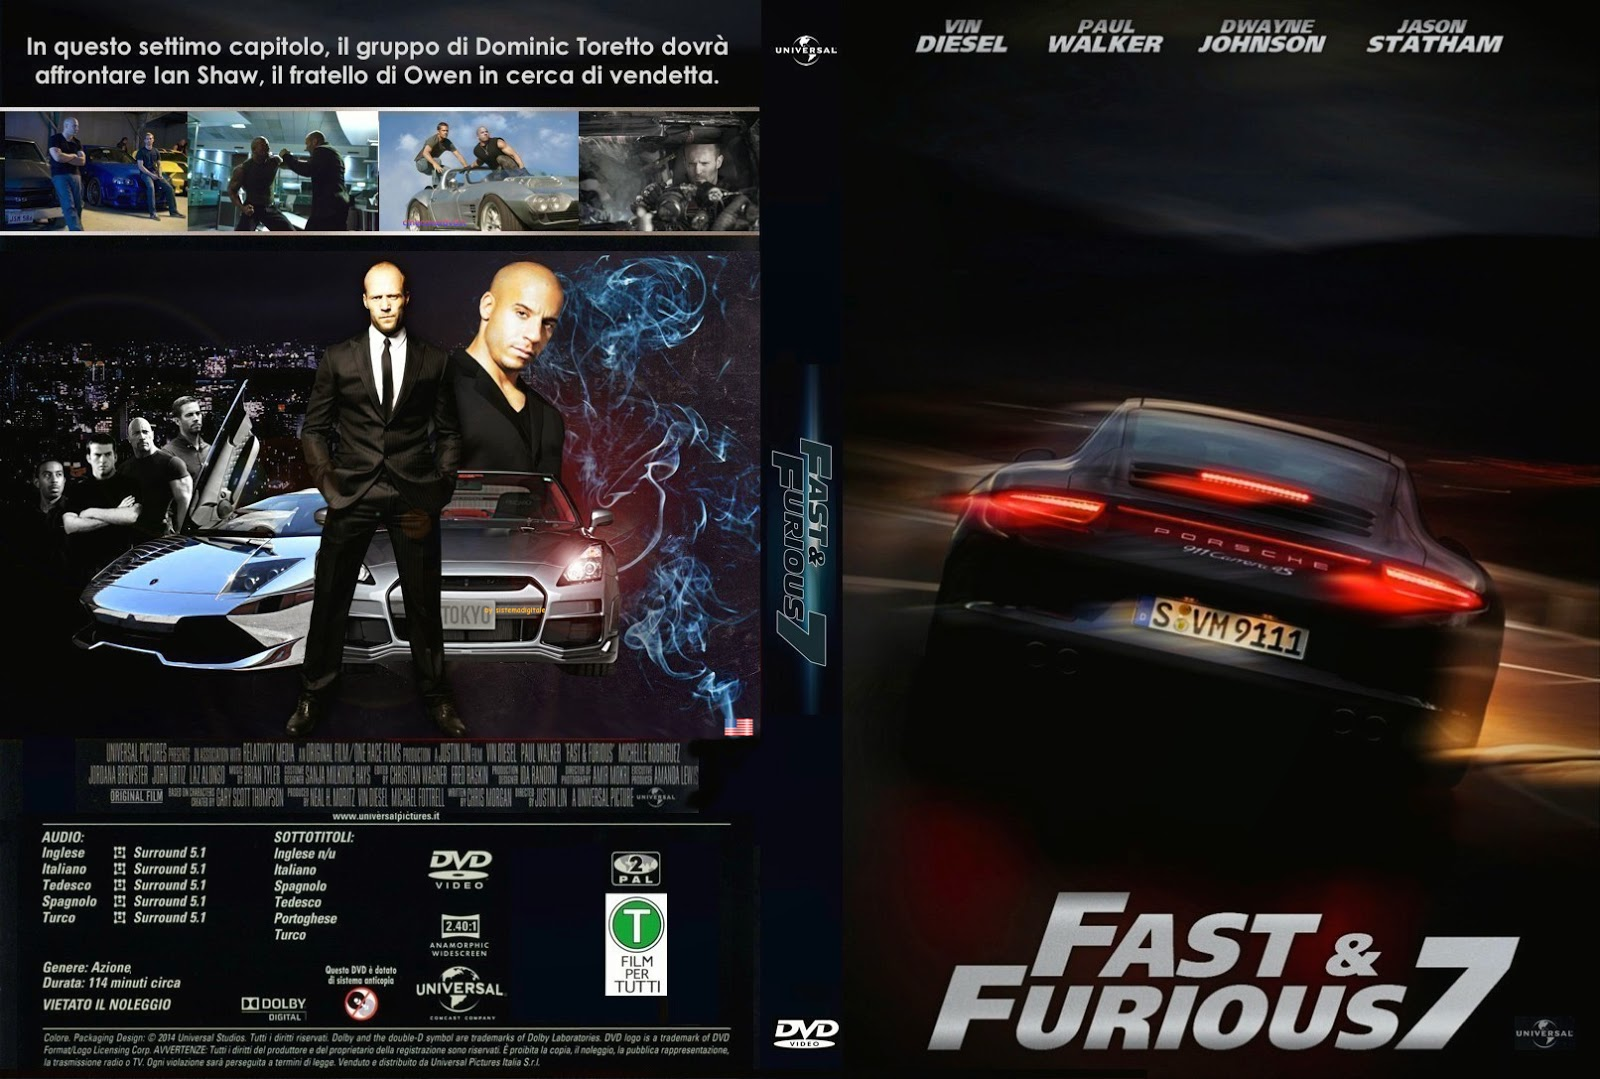 descargatetodotorrent rapido y furioso 7 bluray 720p subtitulada. Black Bedroom Furniture Sets. Home Design Ideas